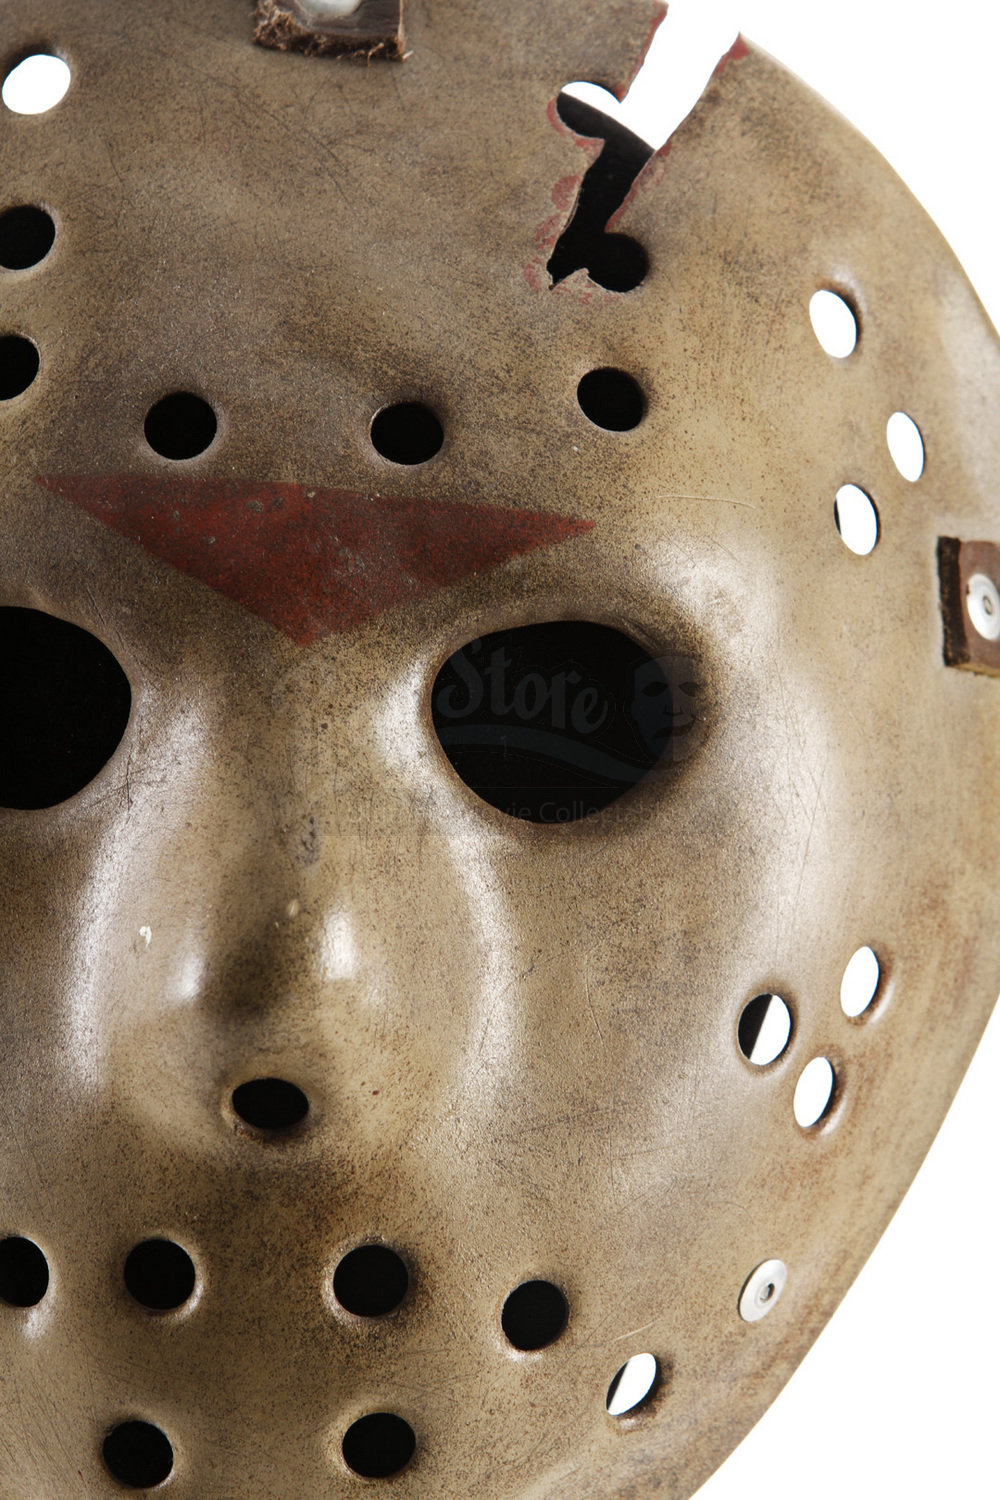 Rare Jason Lives Promotional Hockey Mask Sold Friday JPG 1000x1500 Voorhees Template